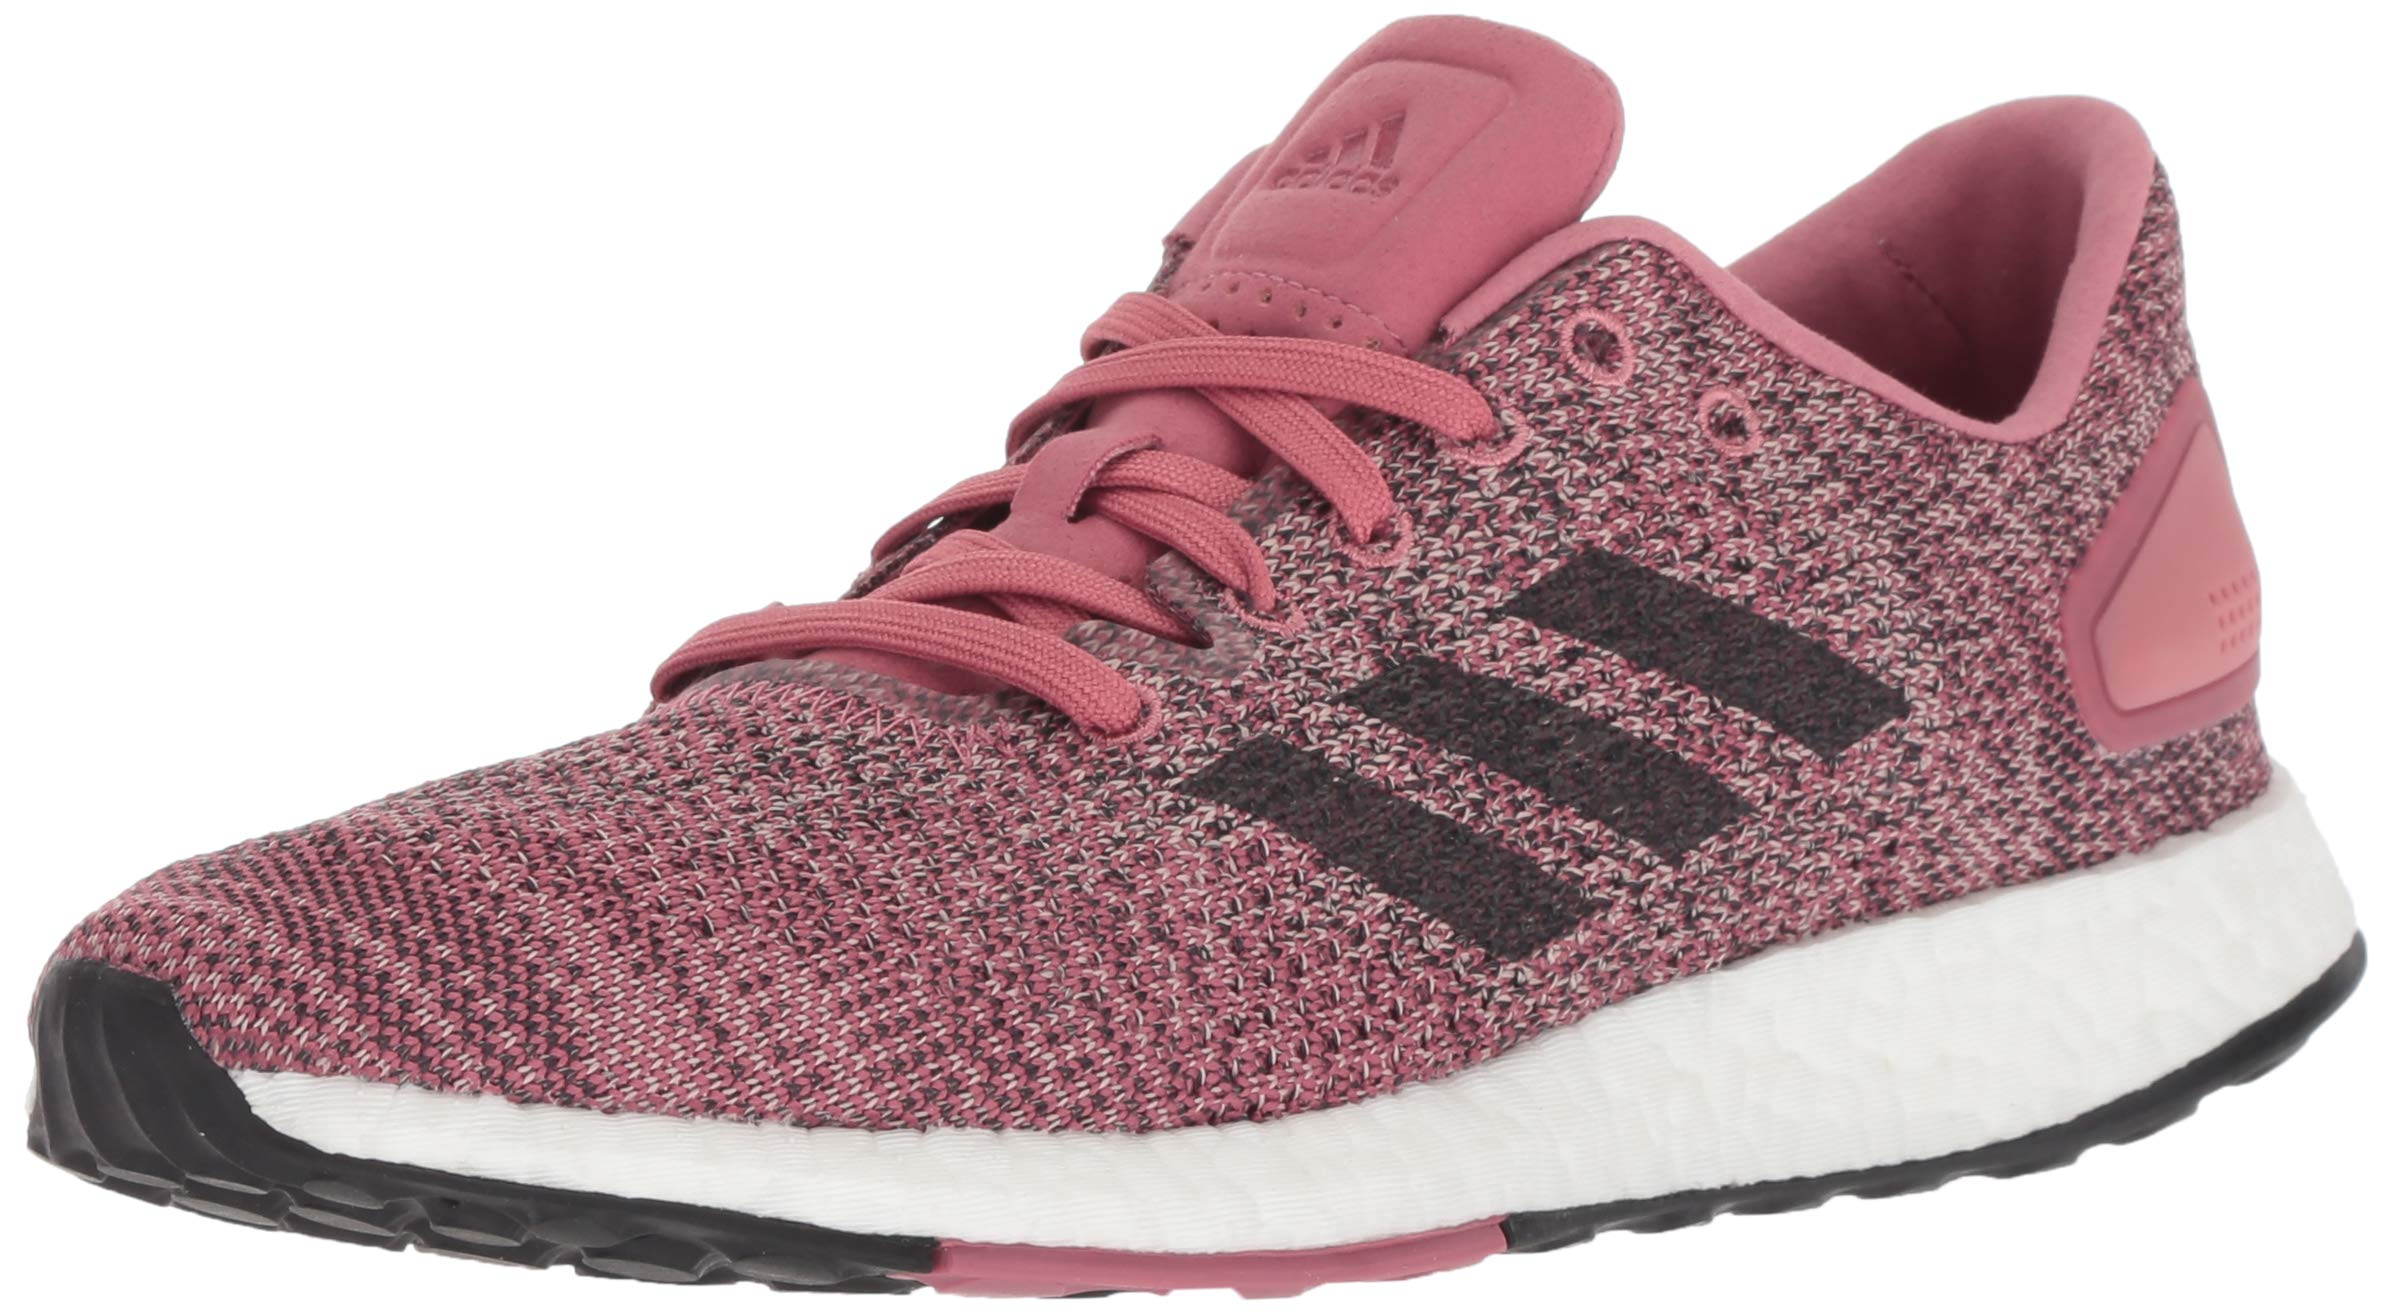 adidas Women's Pureboost DPR Running Shoes, Trace Maroon/Carbon/ash Pearl, 9.5 M US by adidas